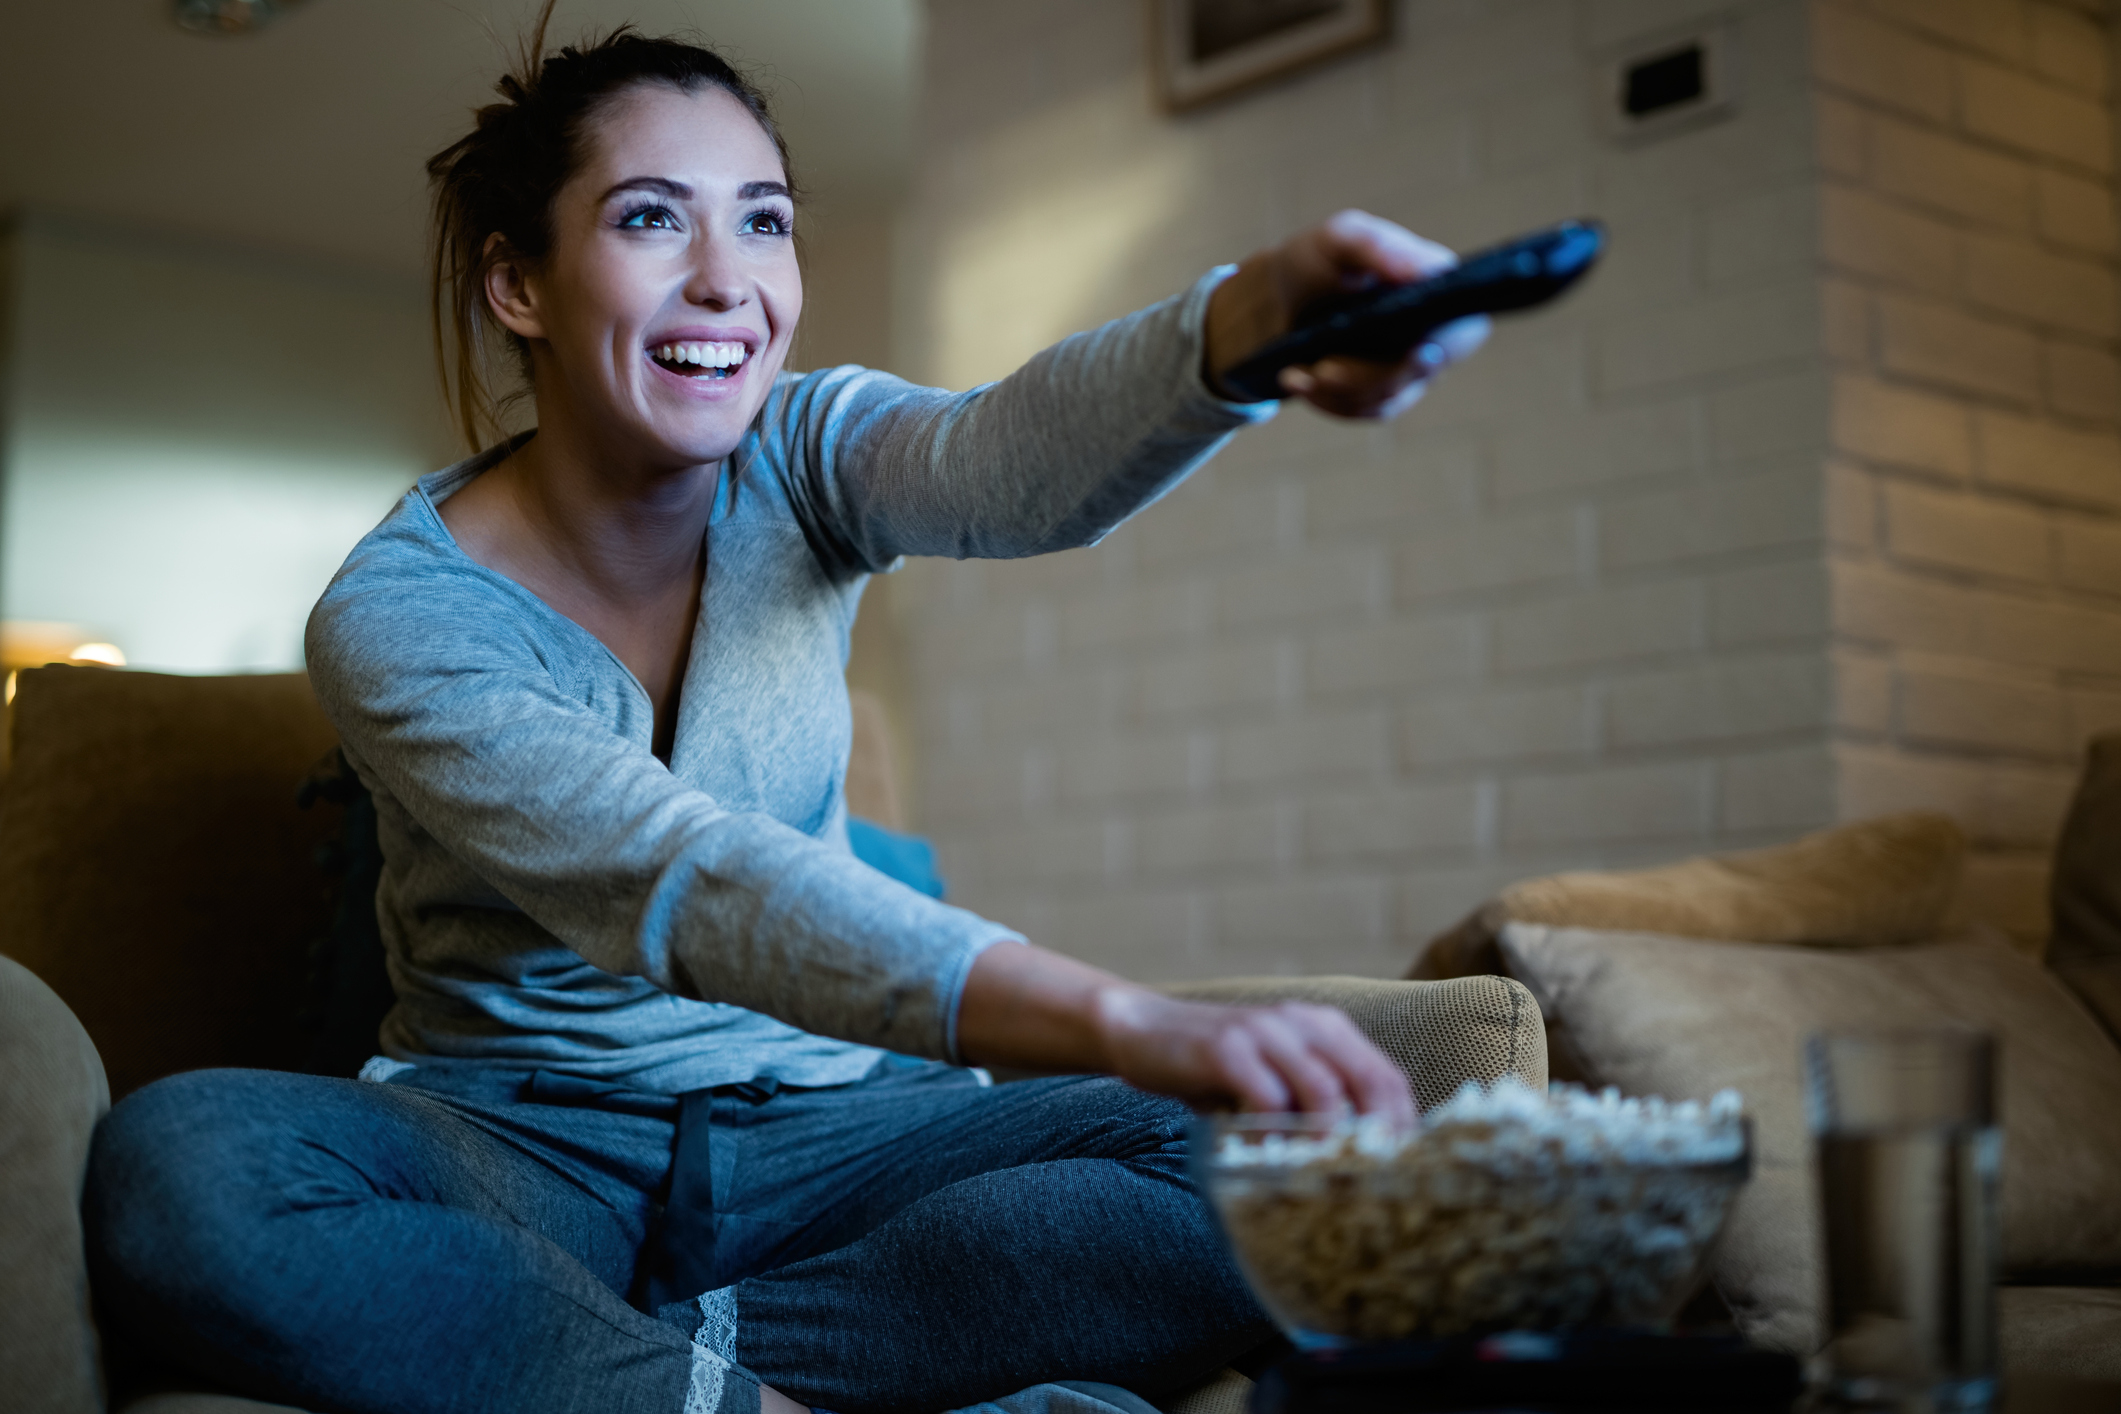 A woman pointing the remote at her TV while reaching for some popcorn.